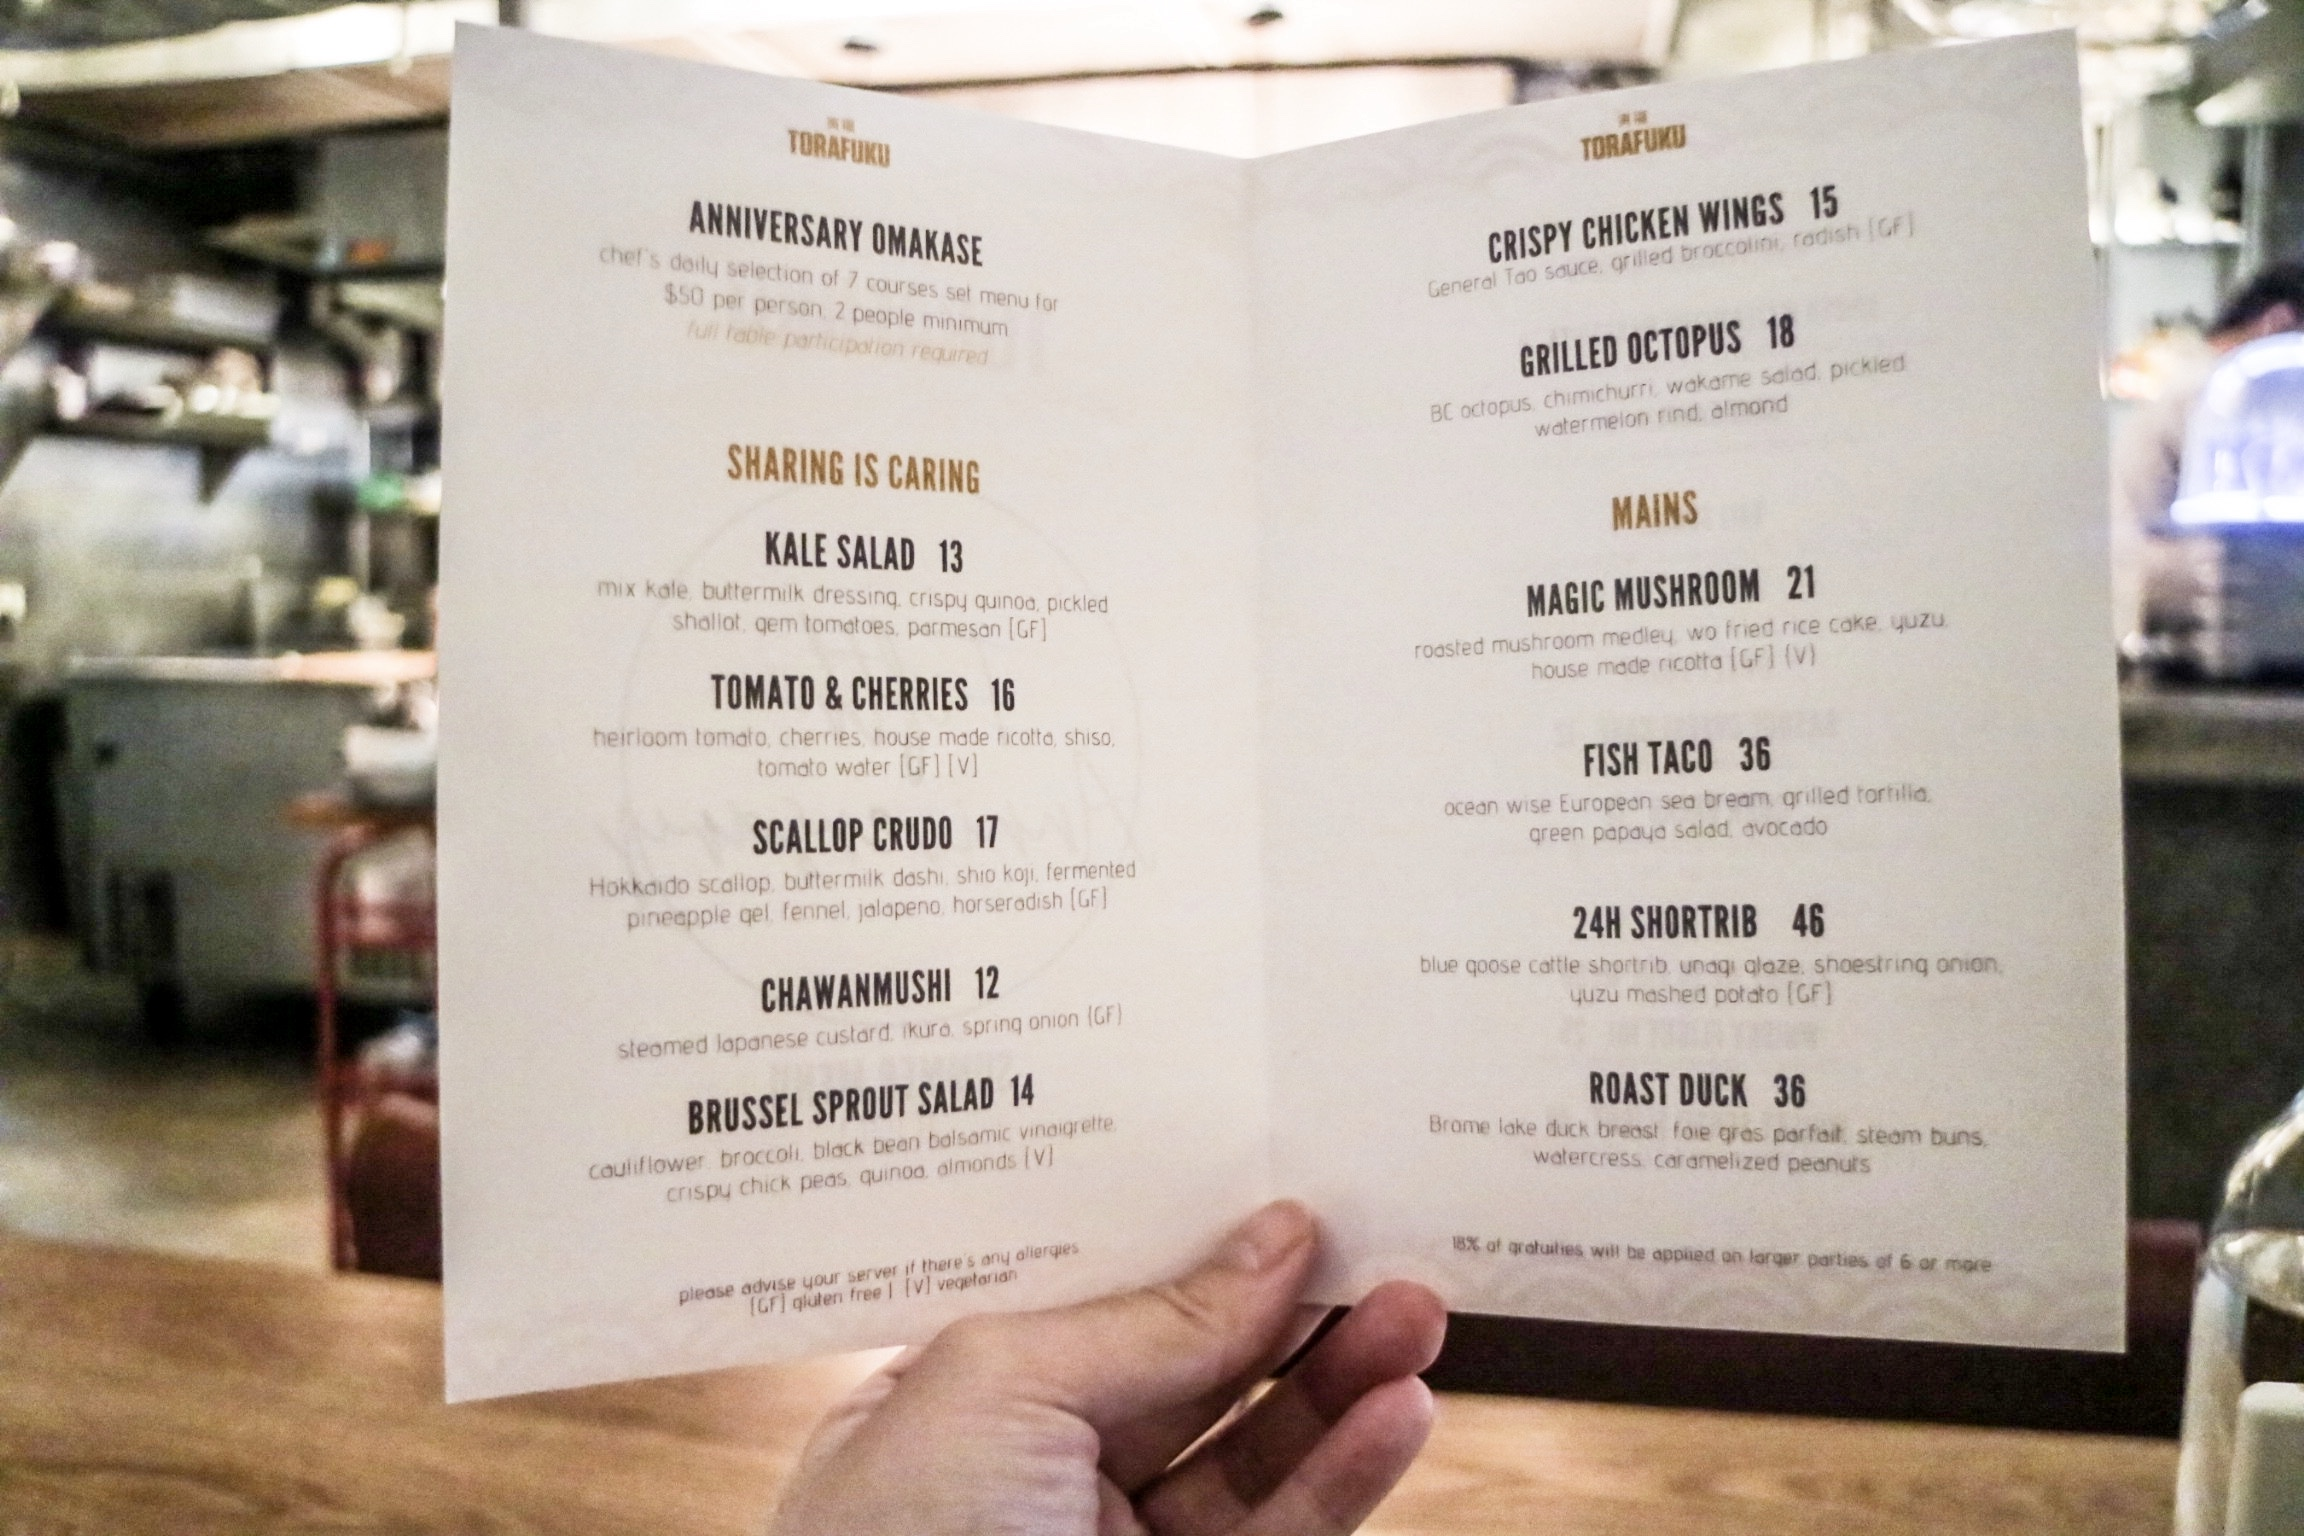 5th Anniversary Chef's Omakase Menu